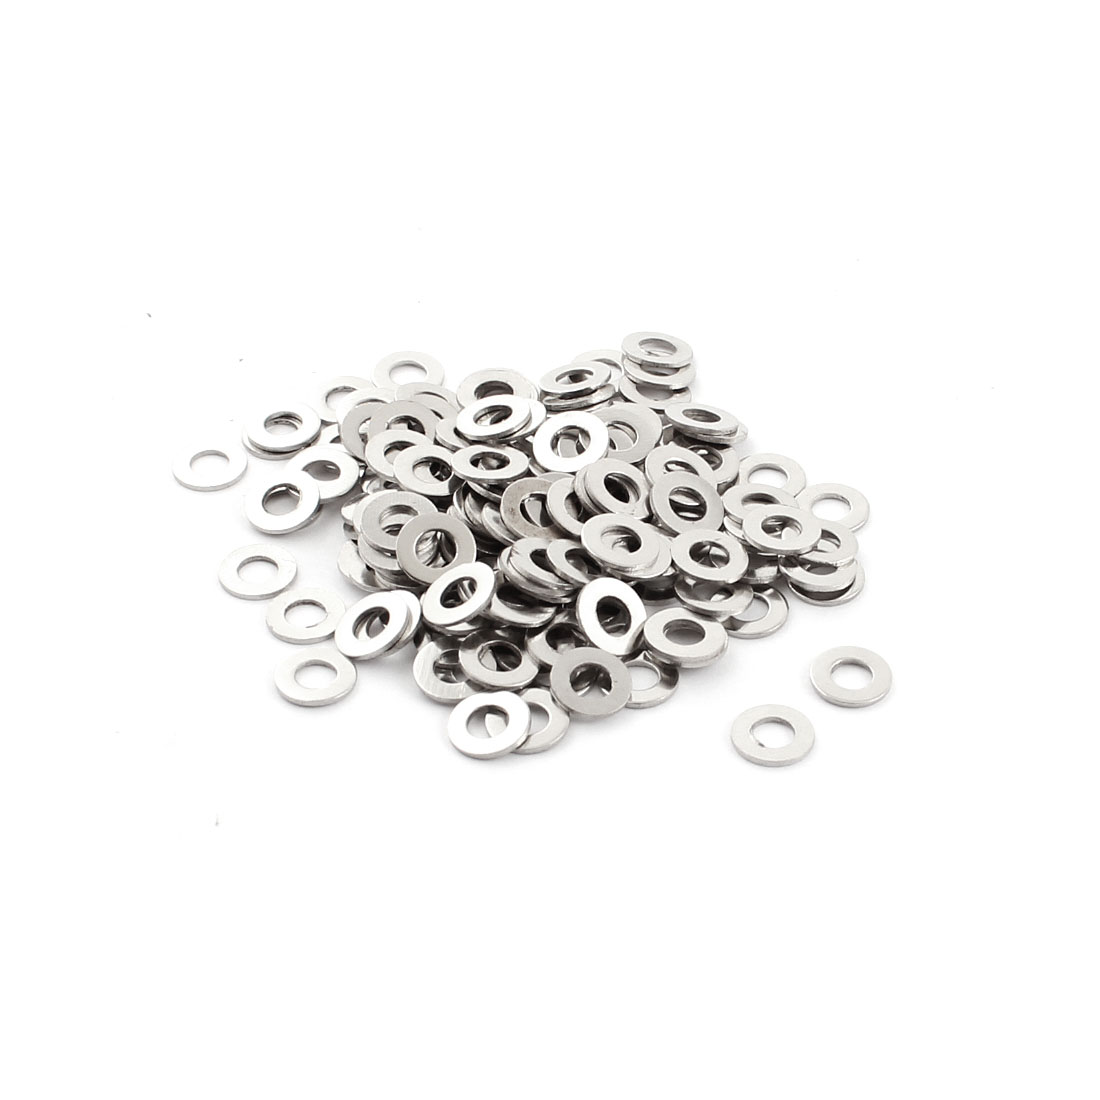 200Pcs Spare Parts 4mm x 8mm x 0.7mm Round Shaped Metal Washers Spacers Fasteners Rings